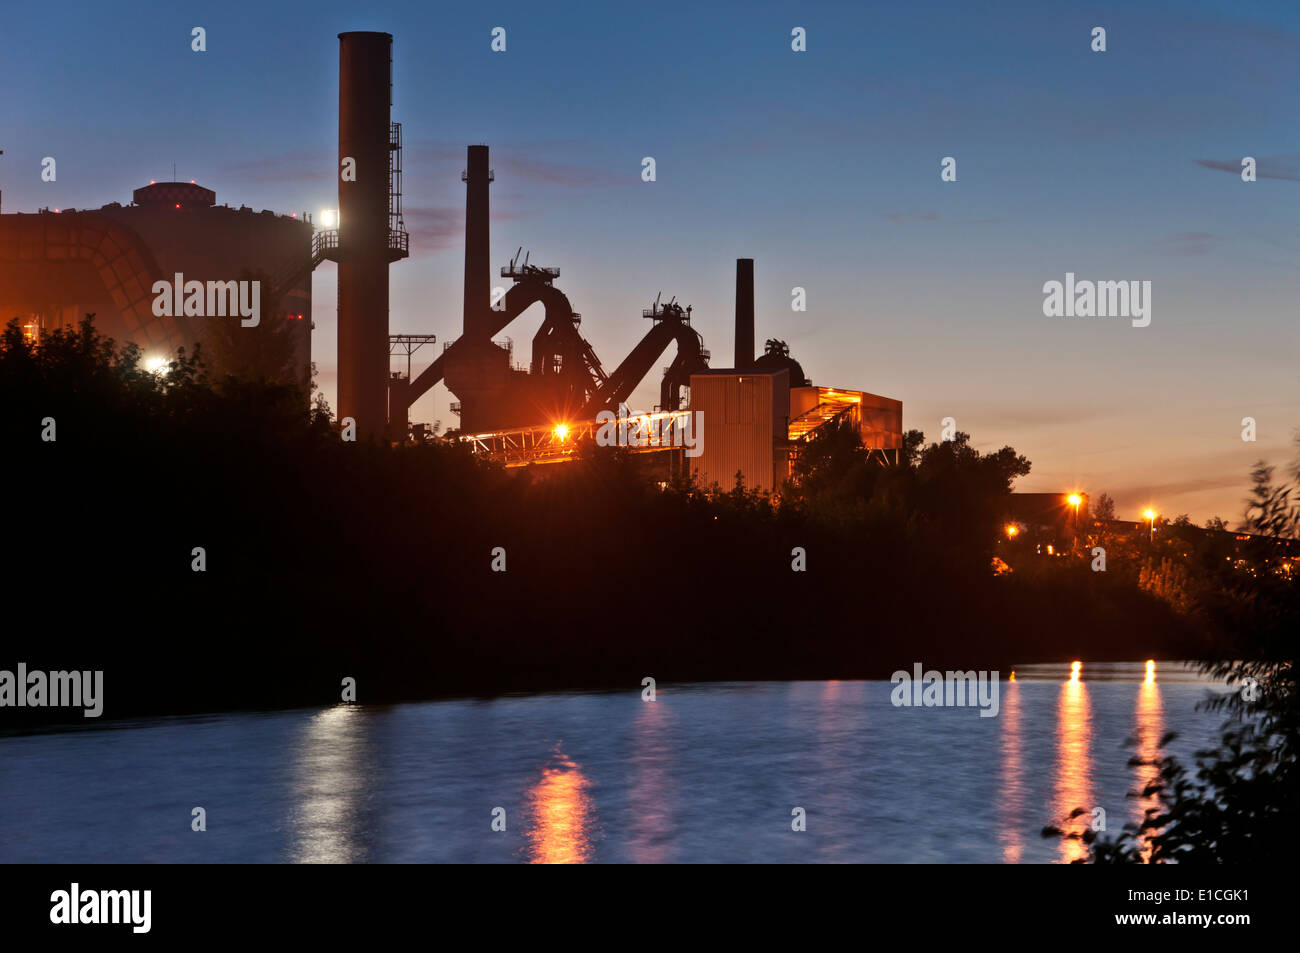 Lighted industrial plant of the steel industry  Water Reflection at night - Stock Image